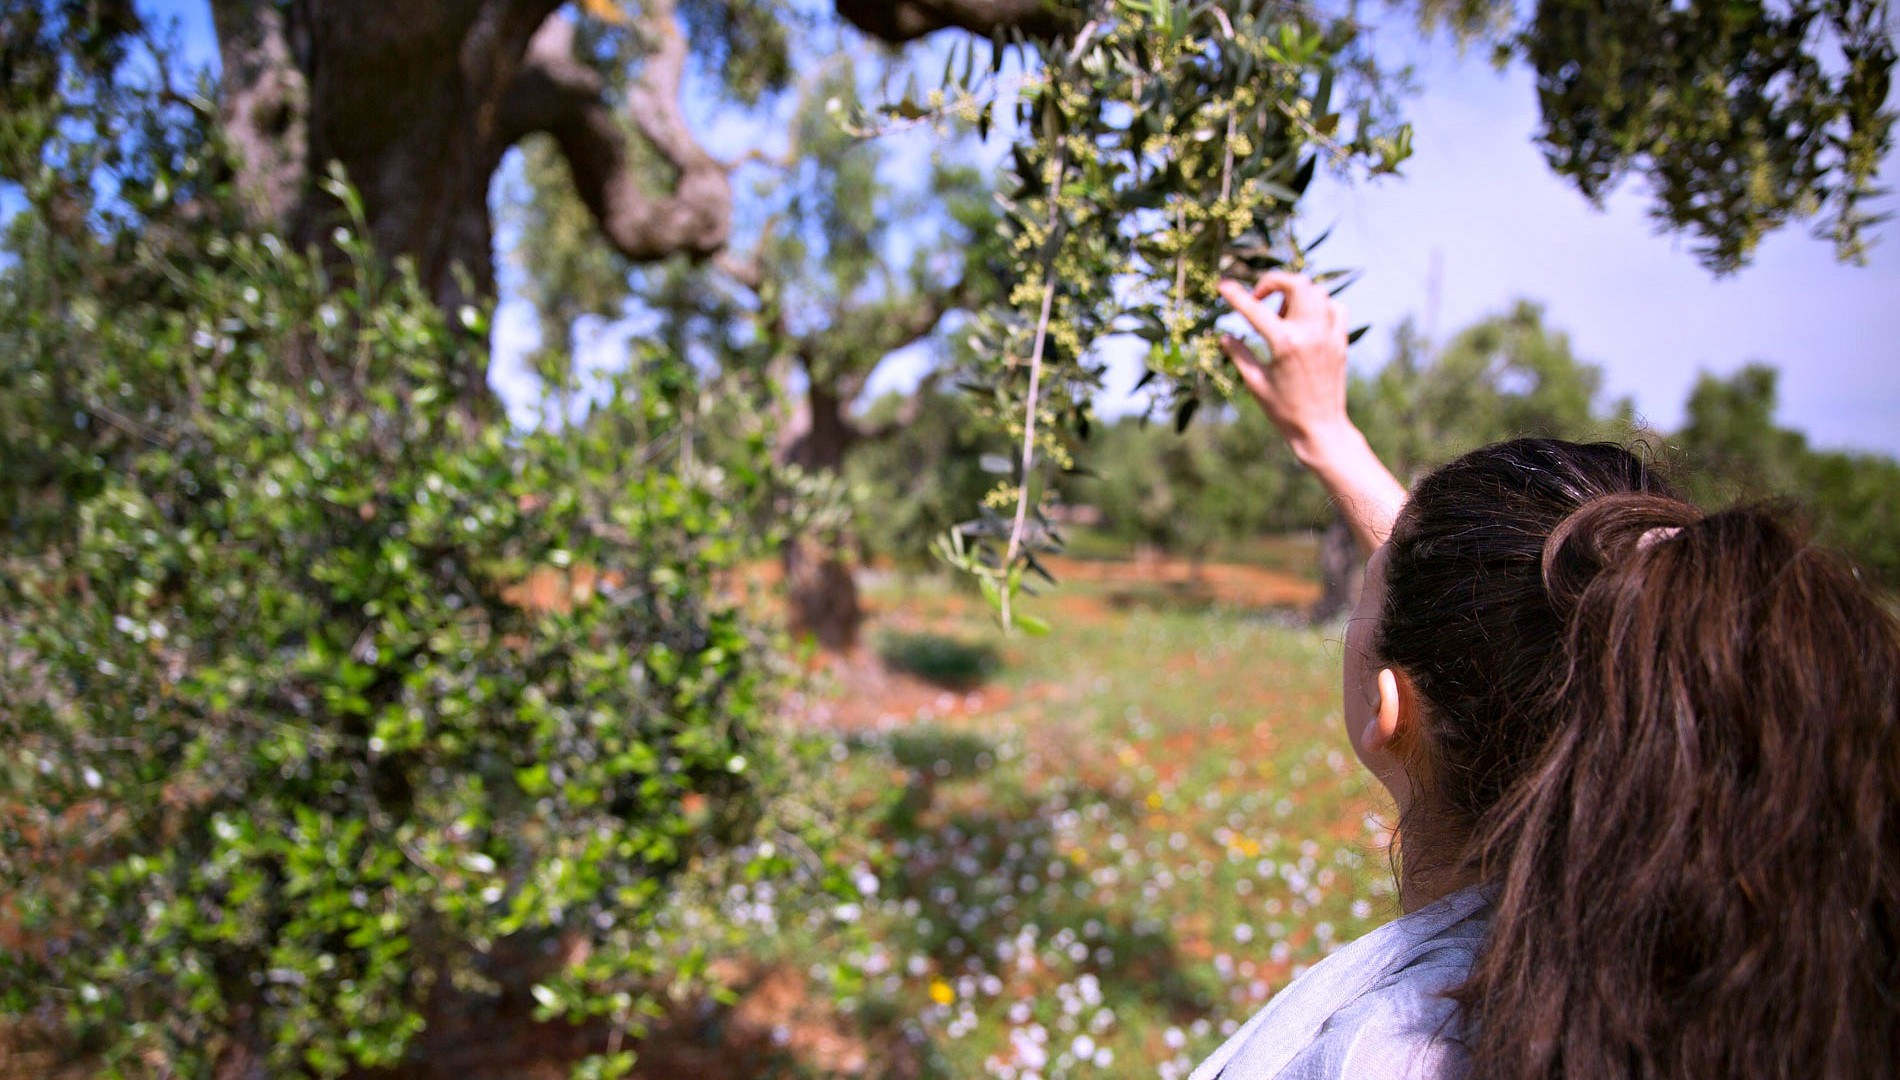 In Don Piedro's olive trees garden. Photo by Francois